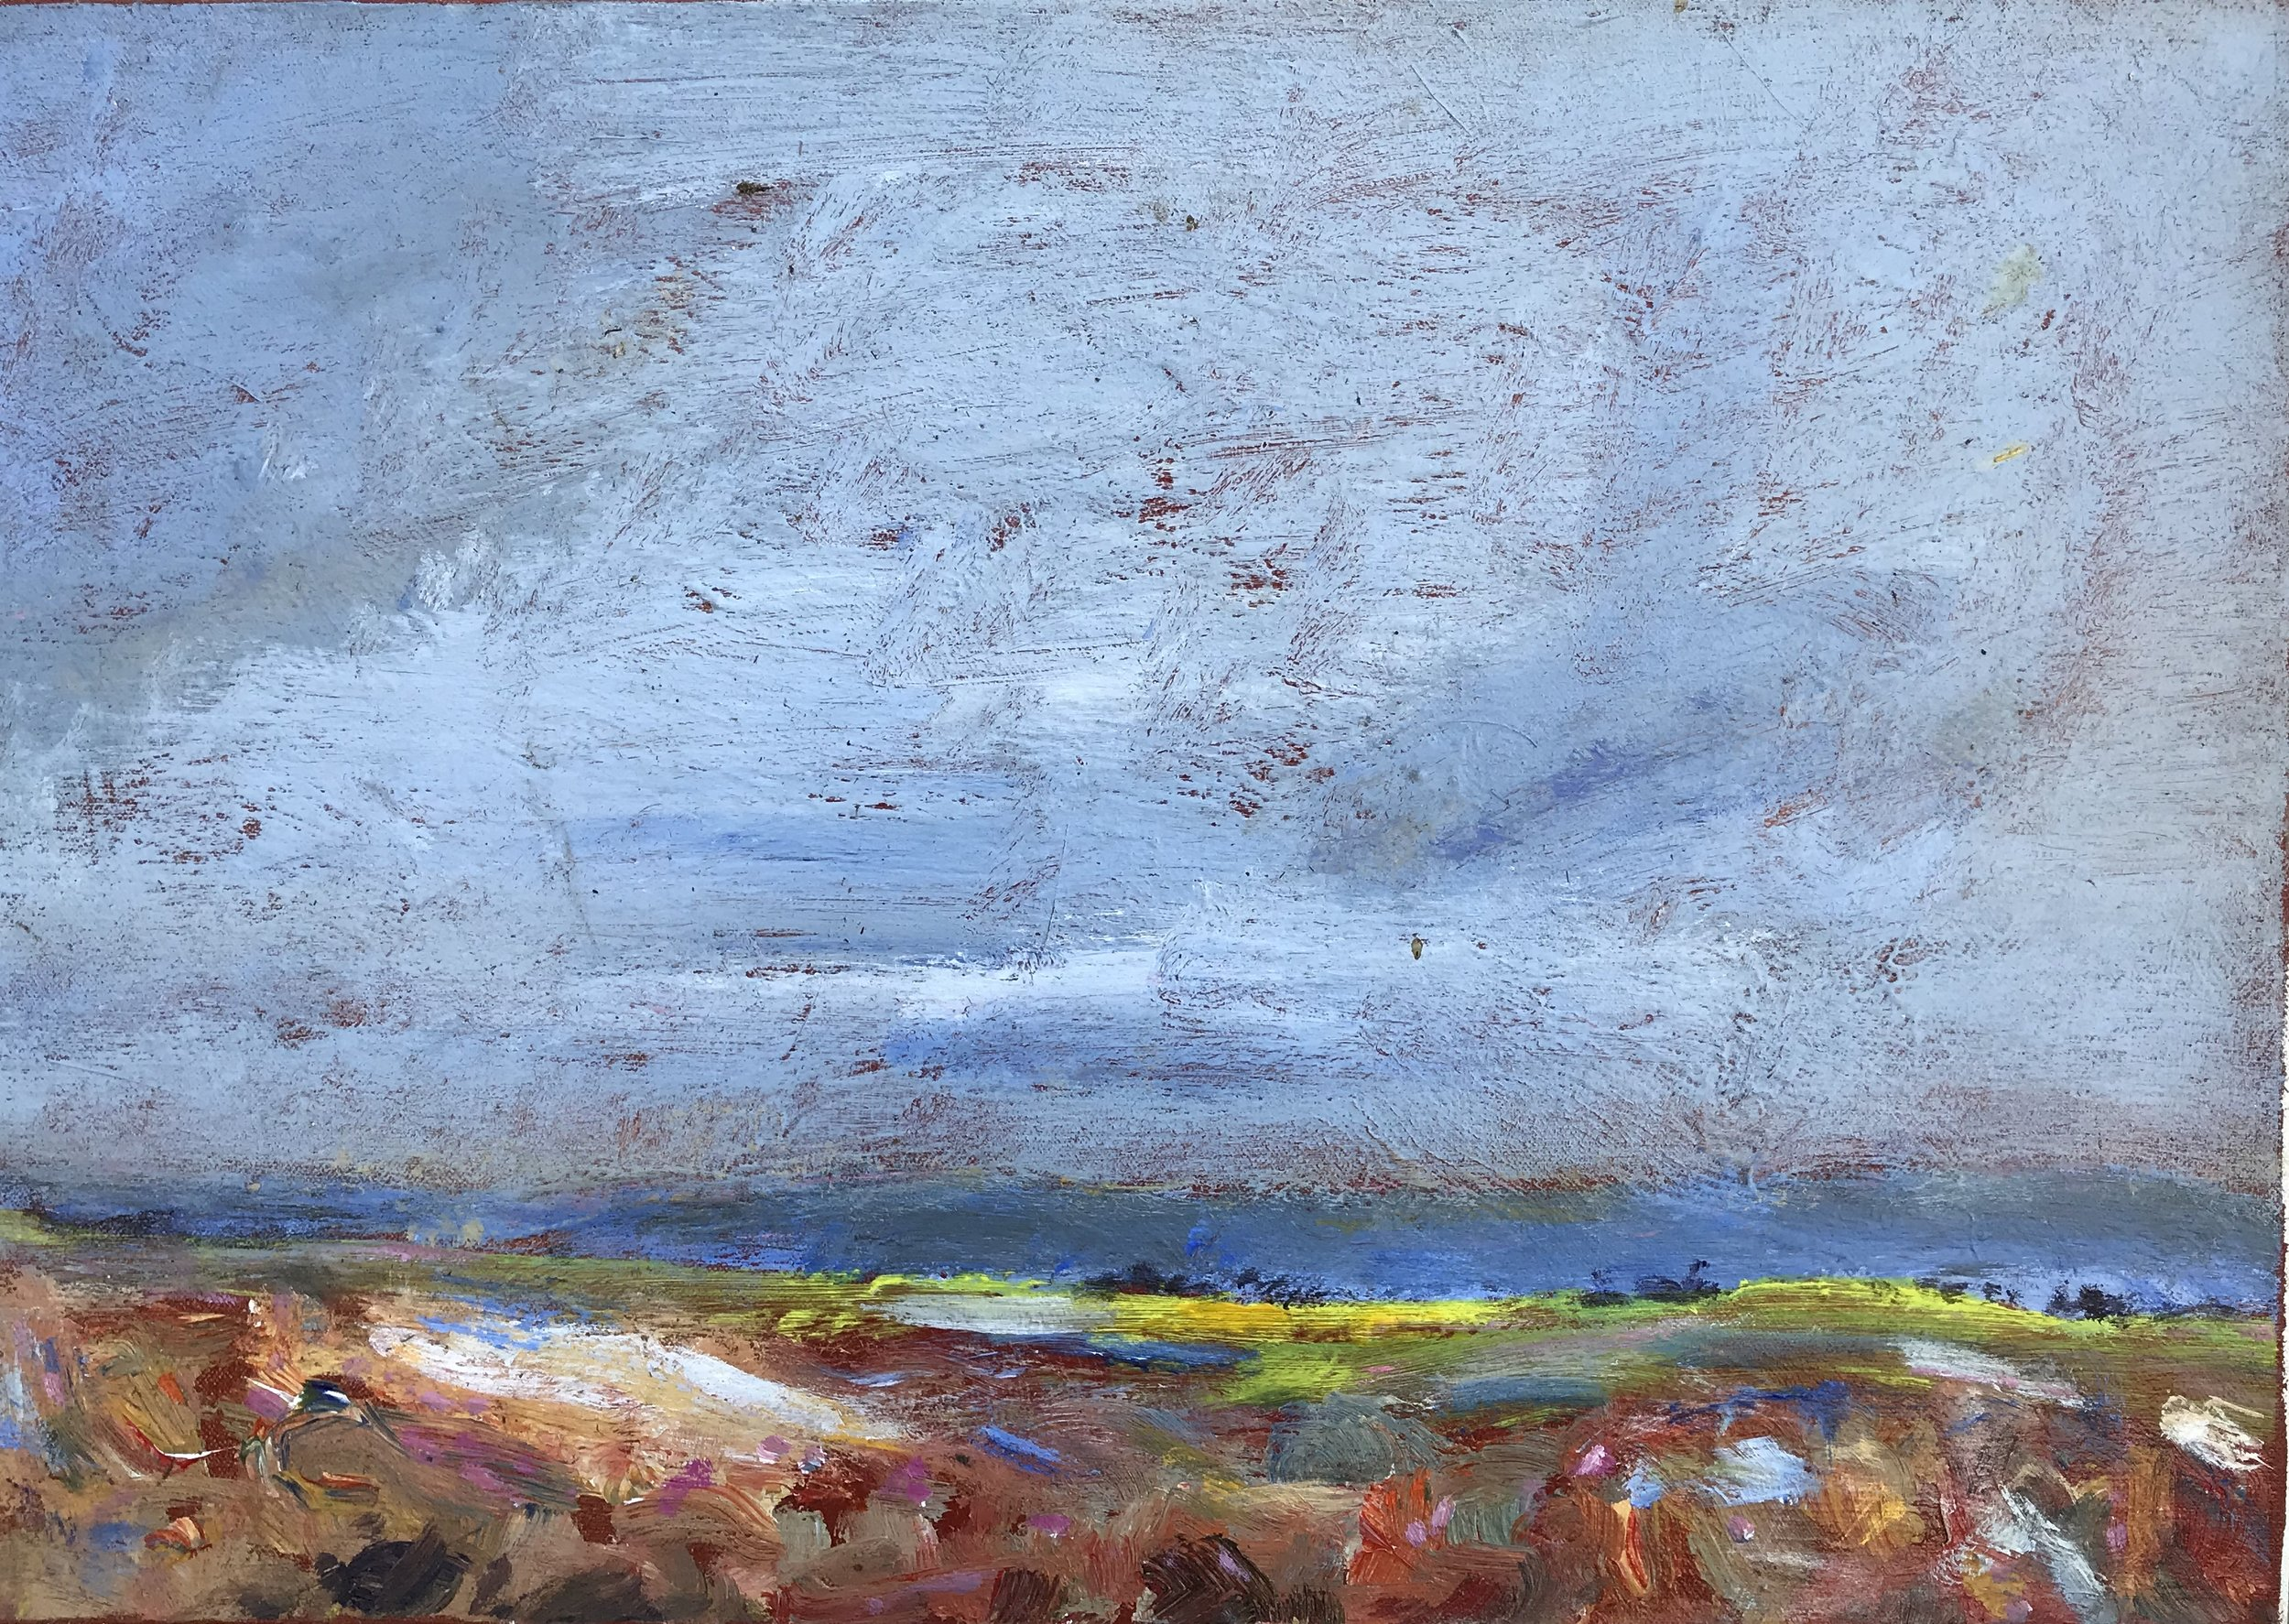 """""""Provence"""" - 14"""" x 20"""", oil on canvasValue: $1,550Opening bid: $600email your bid to: art@bradfordbrenner.com"""